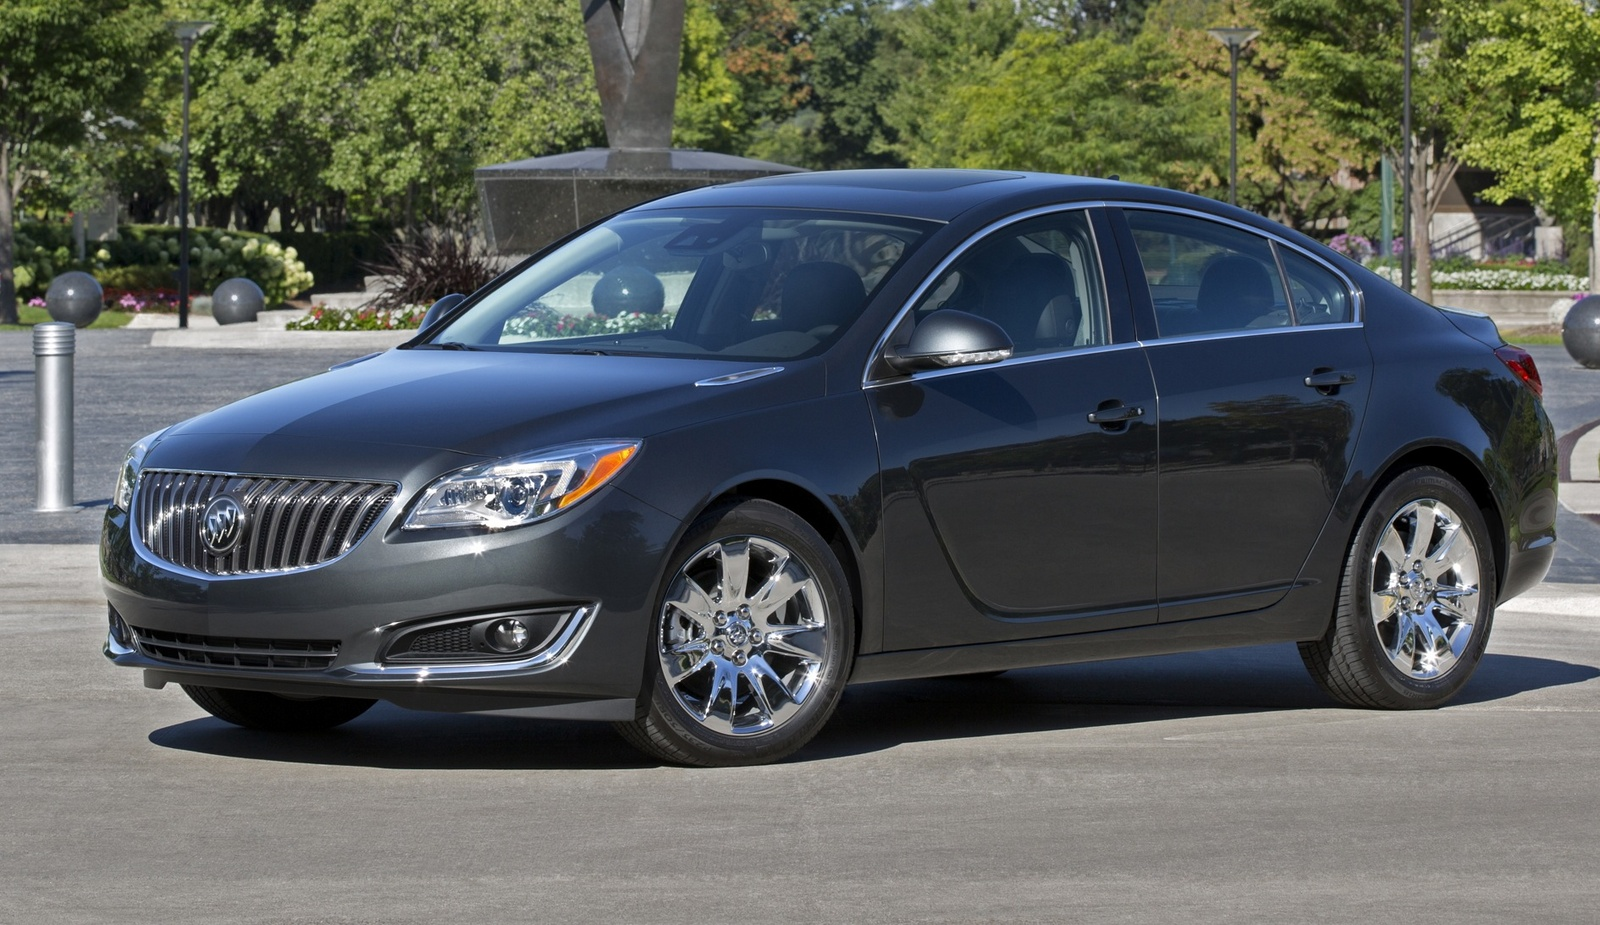 2015 Buick Regal #4